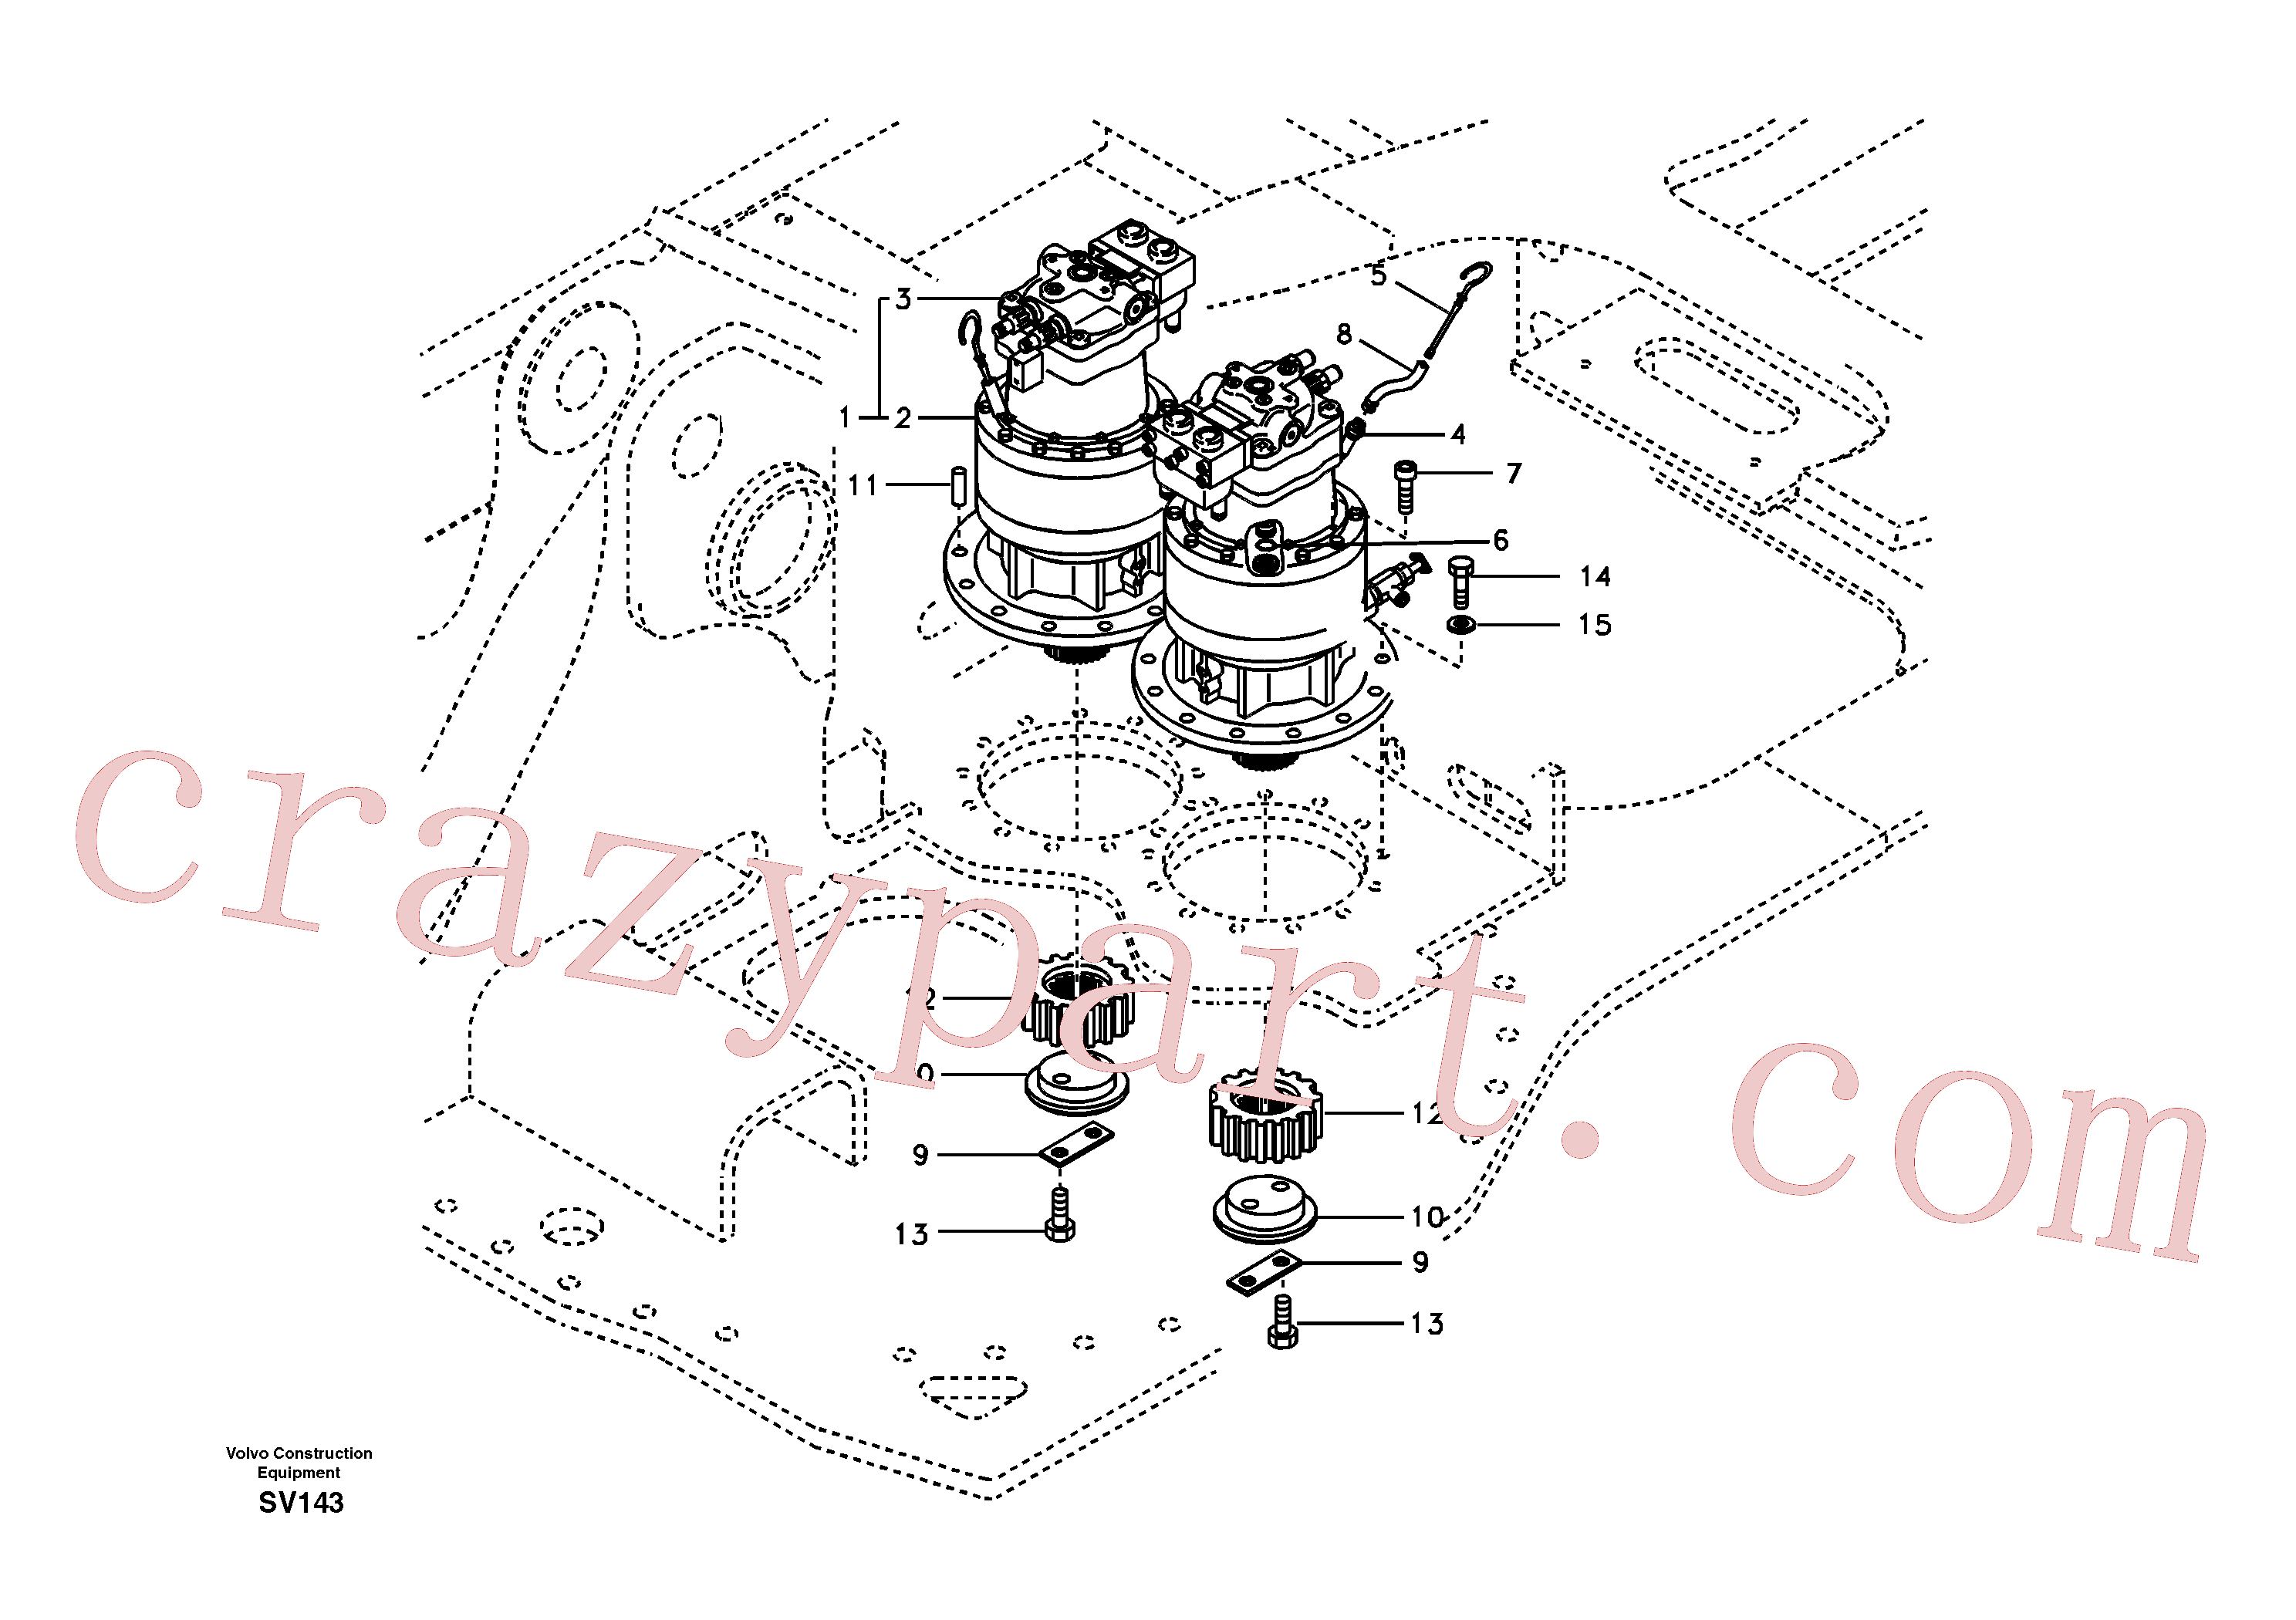 SA7118-30140 Gearbox for Volvo Excavator Parts